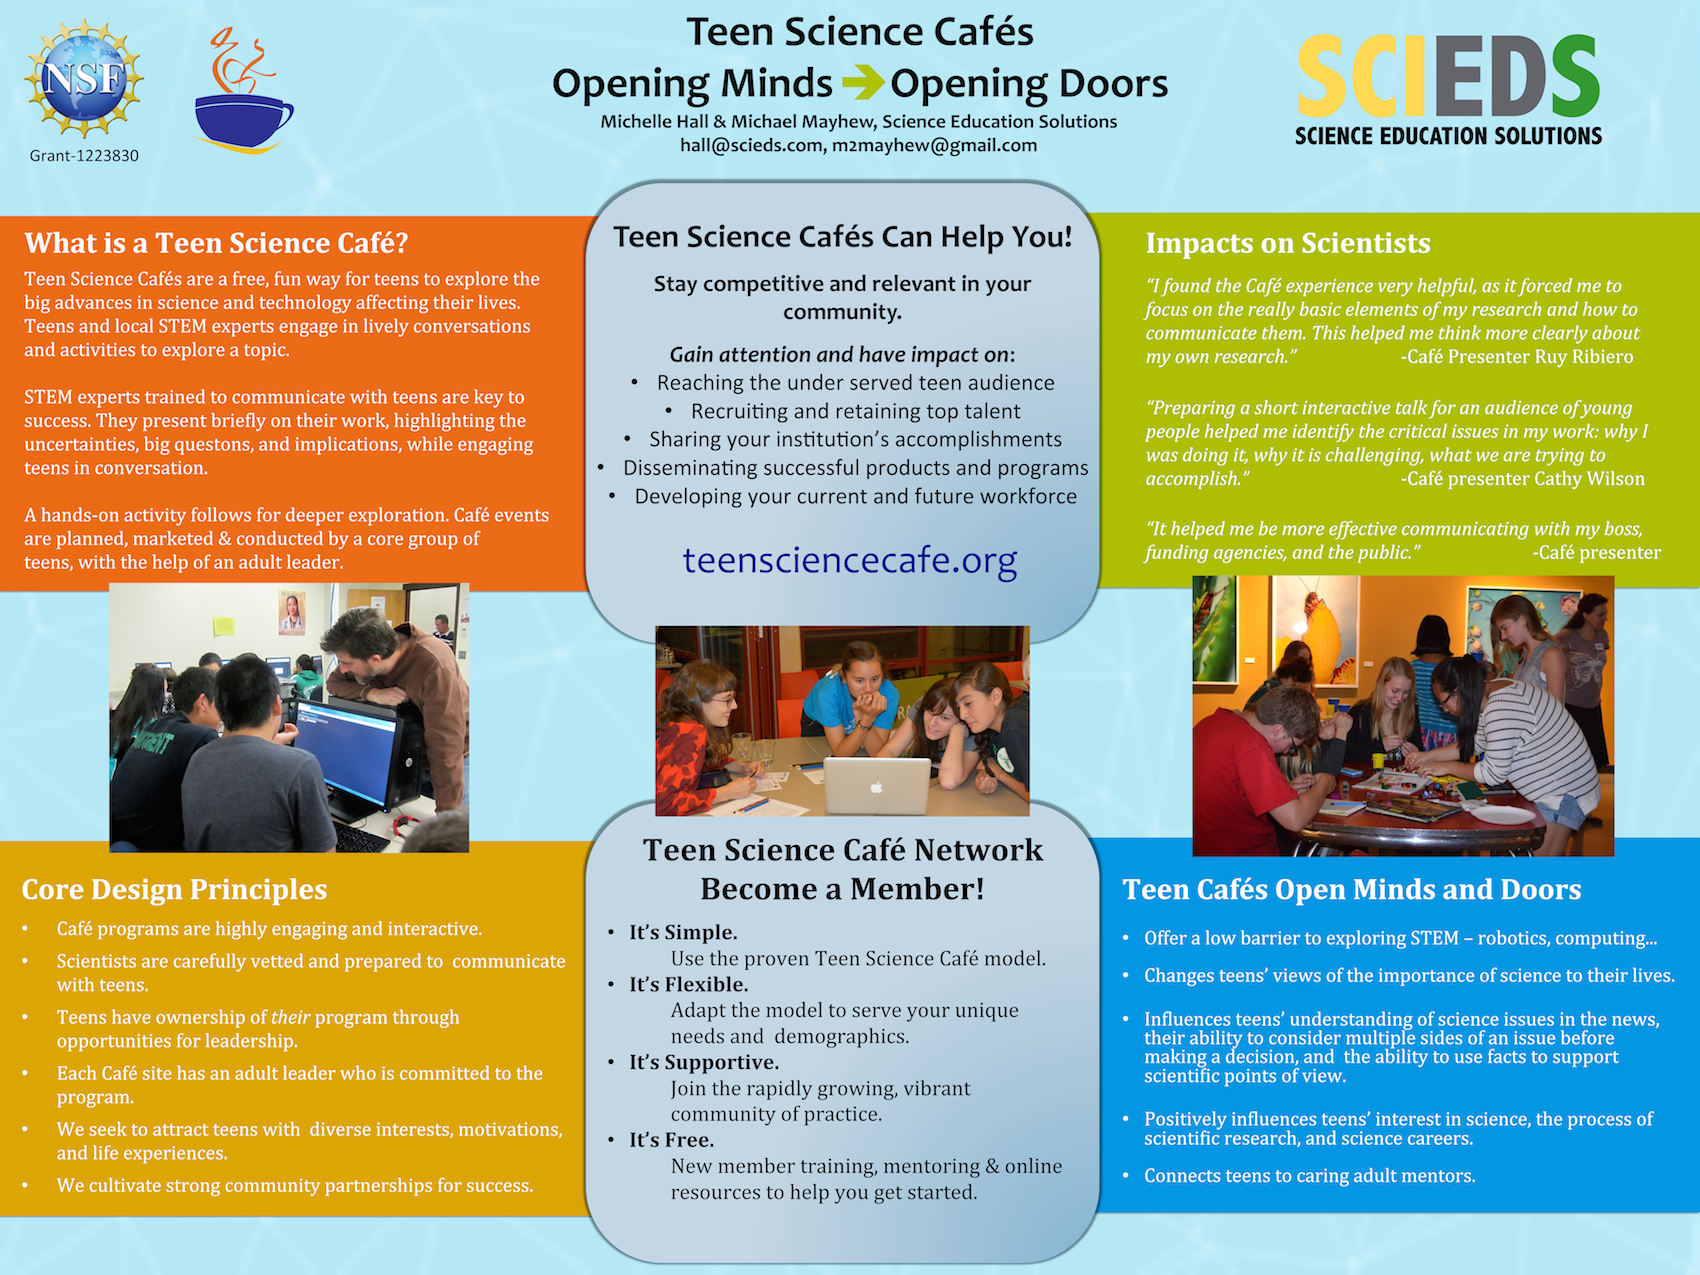 TSCN -Opening Doors and Minds poster